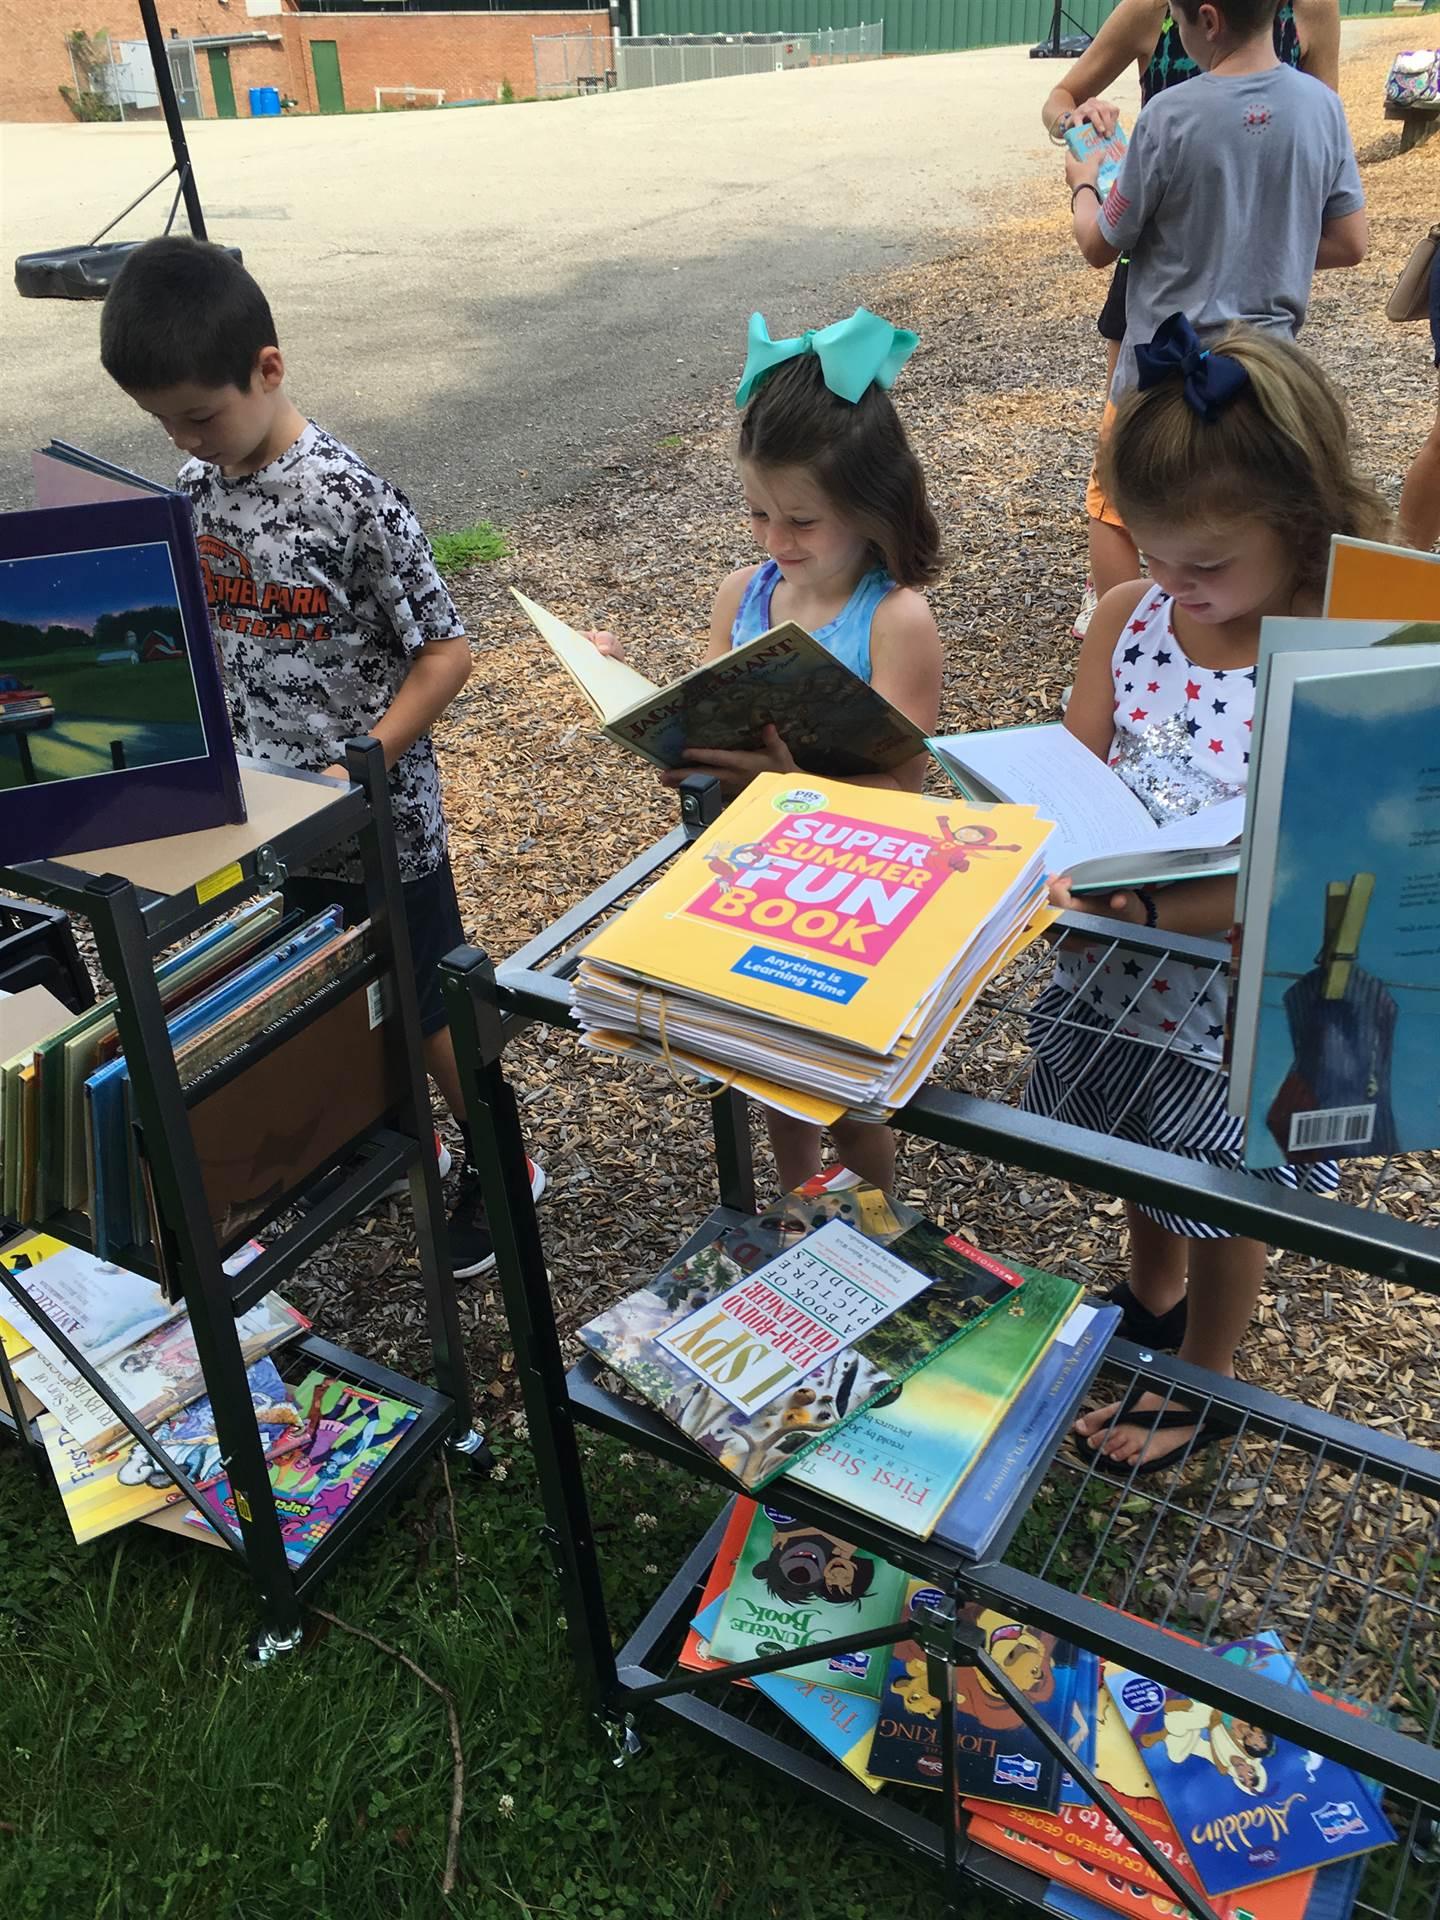 Students were able to select two books at the Pop Up Library